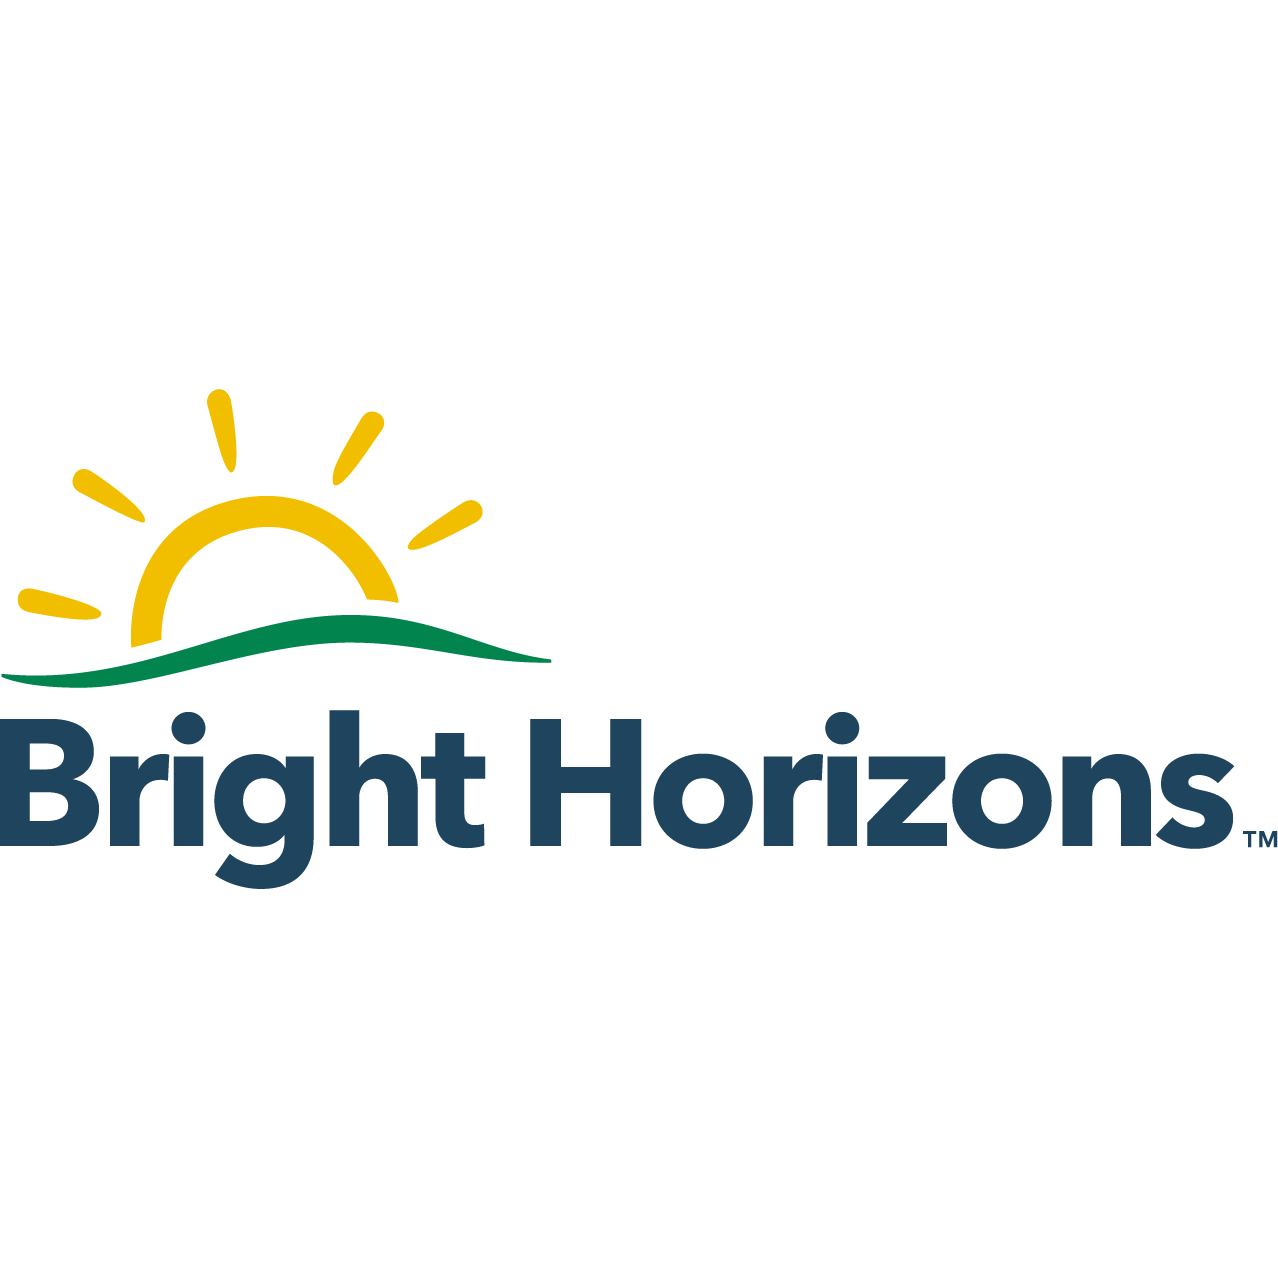 Bright Horizons Skypark Early Learning and Childcare - Glasgow, Lanarkshire G3 8EP - 03339 204174 | ShowMeLocal.com